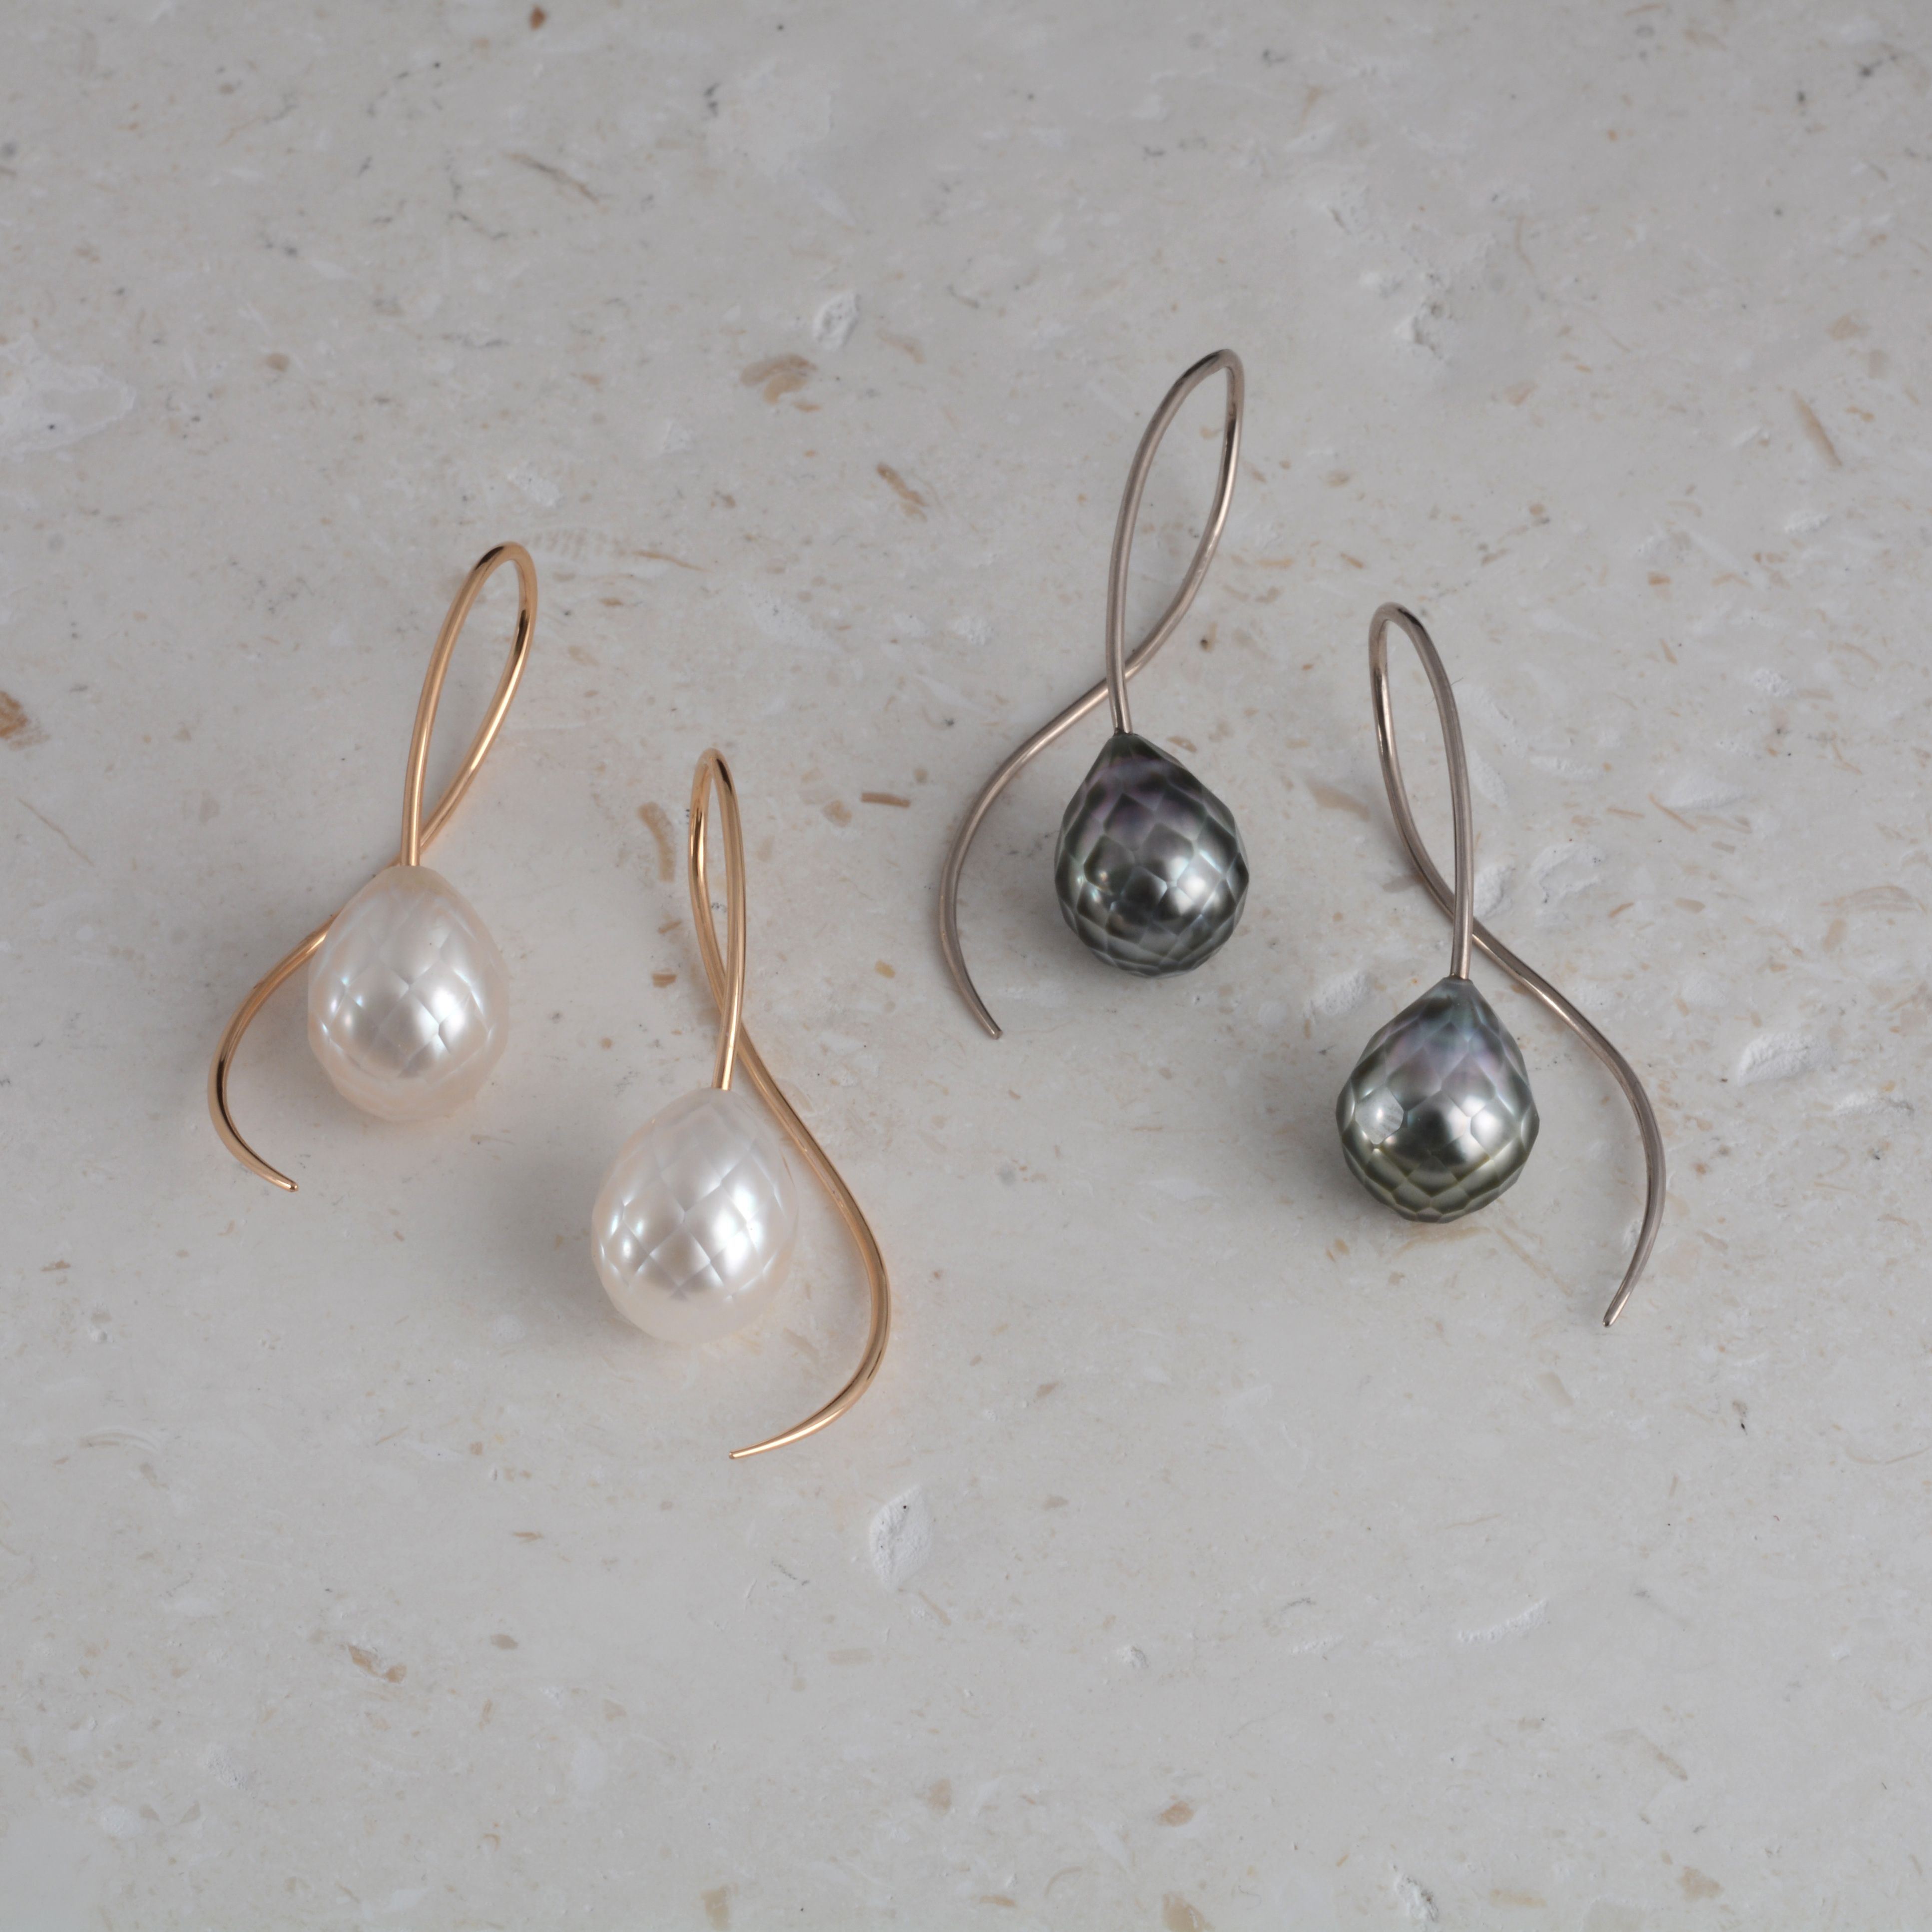 2dd746ffa0d Facinating faceted pearls - these earrings don t hang around long ...